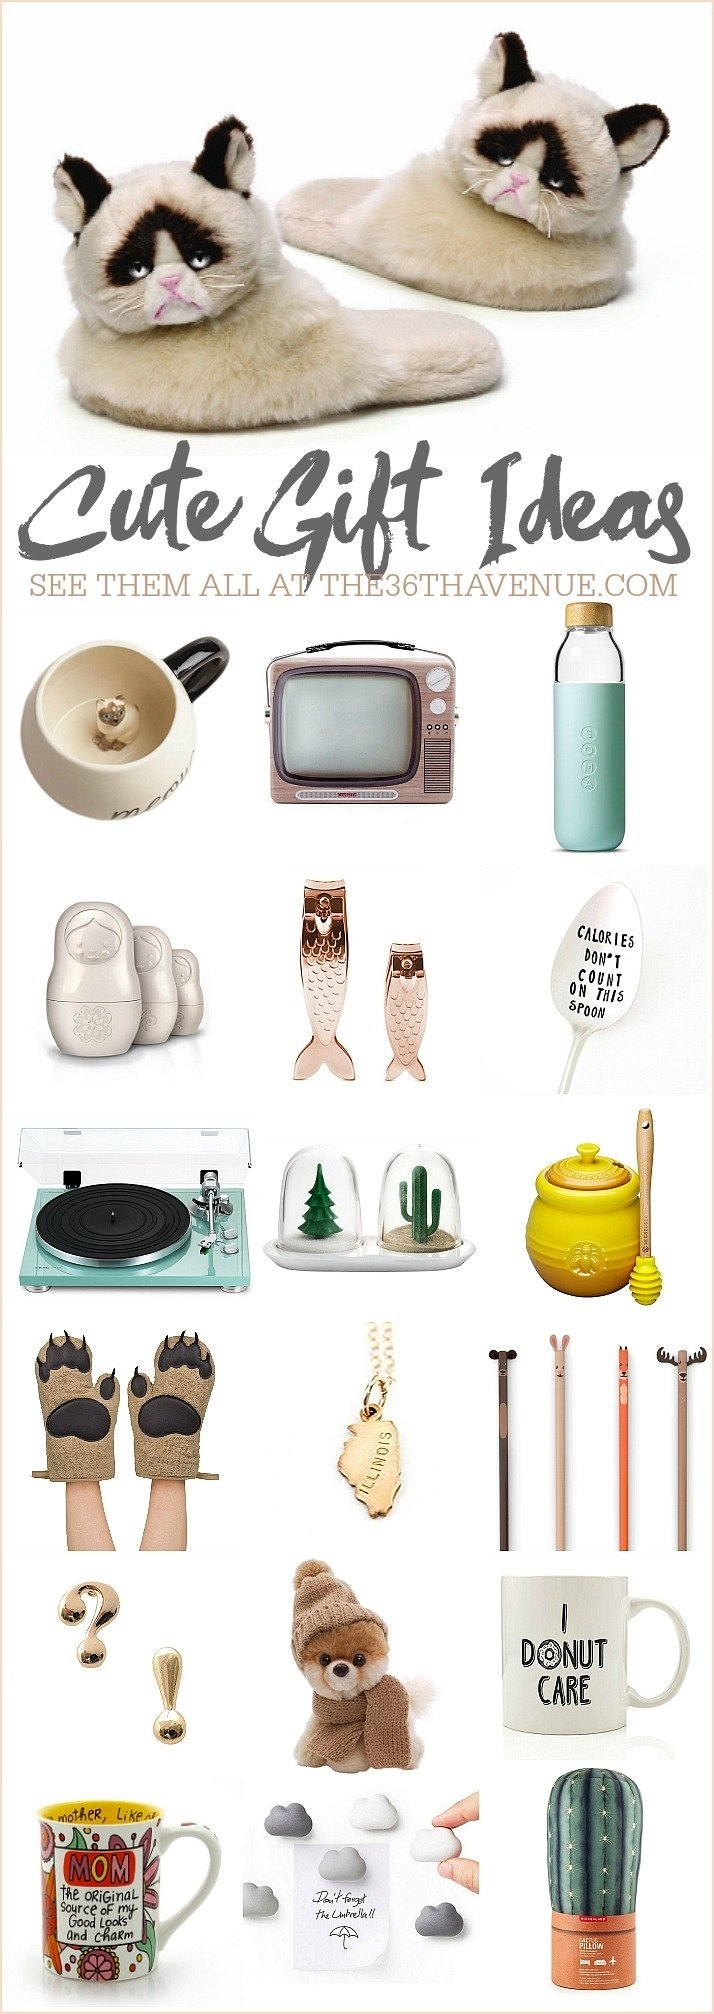 25 gift ideas - cute women gifts - the 36th avenue